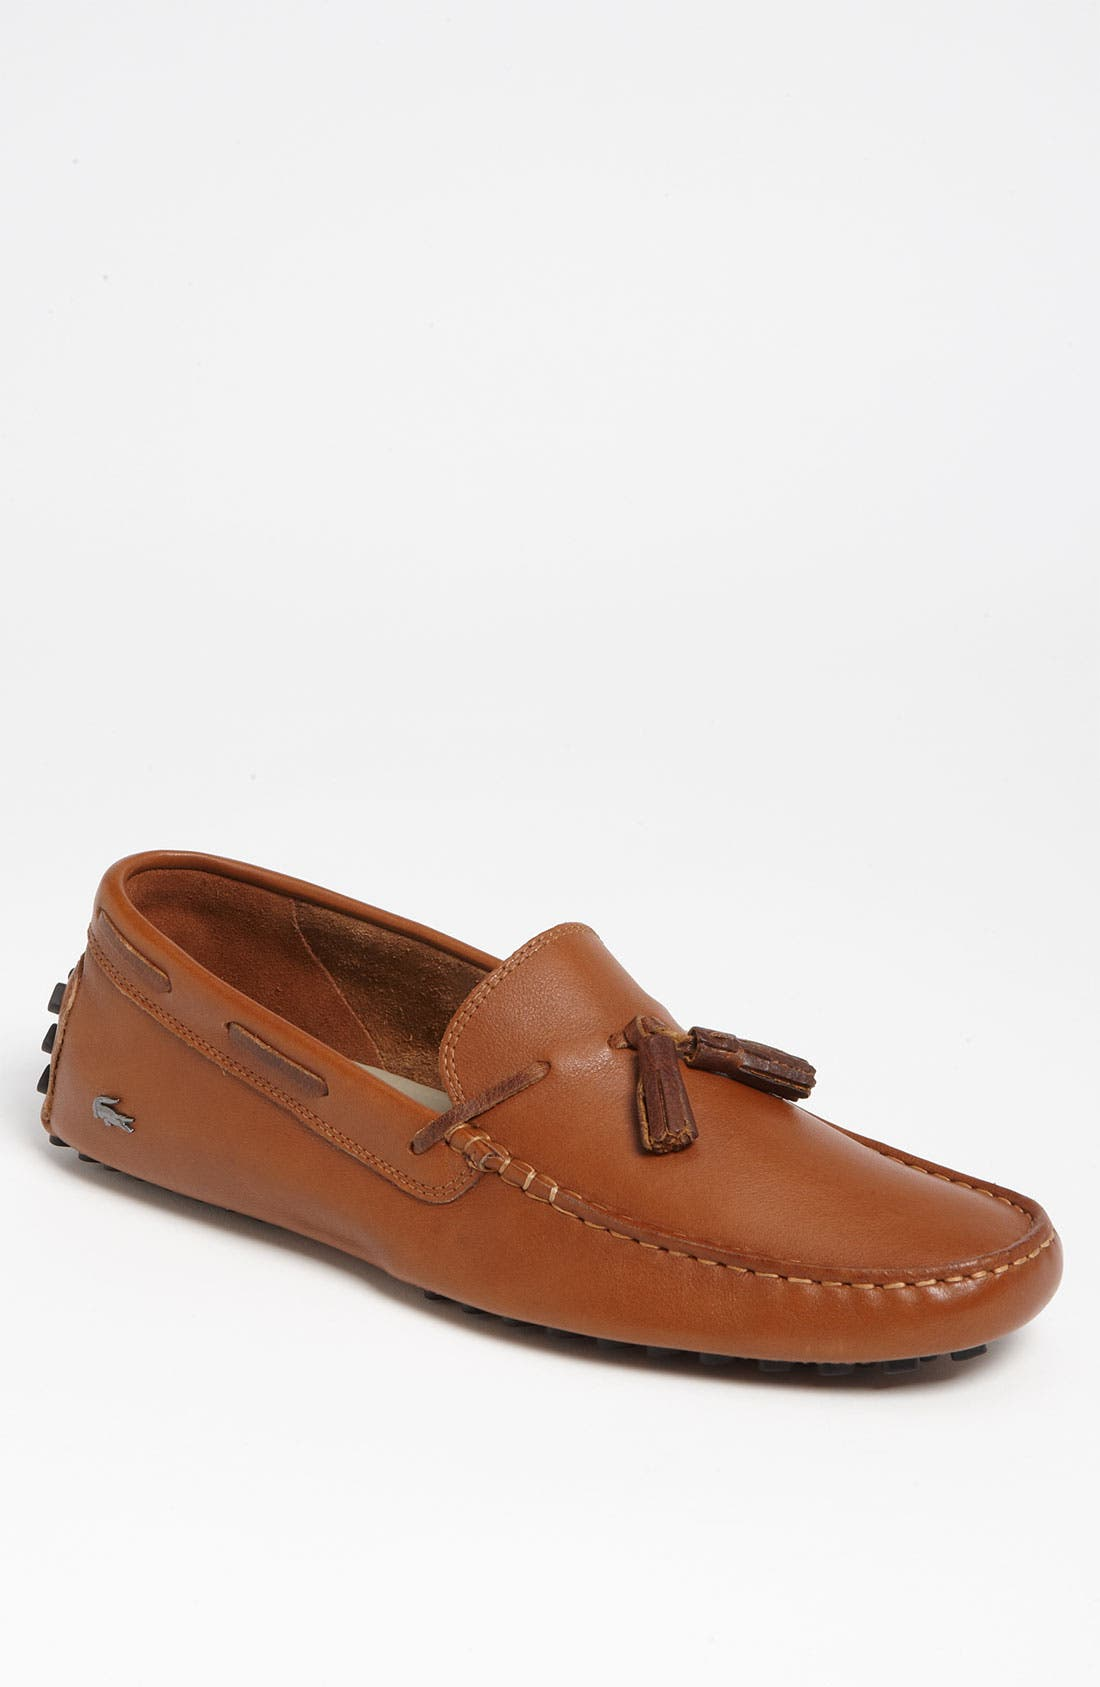 Alternate Image 1 Selected - Lacoste 'Concours Tassel 3' Loafer